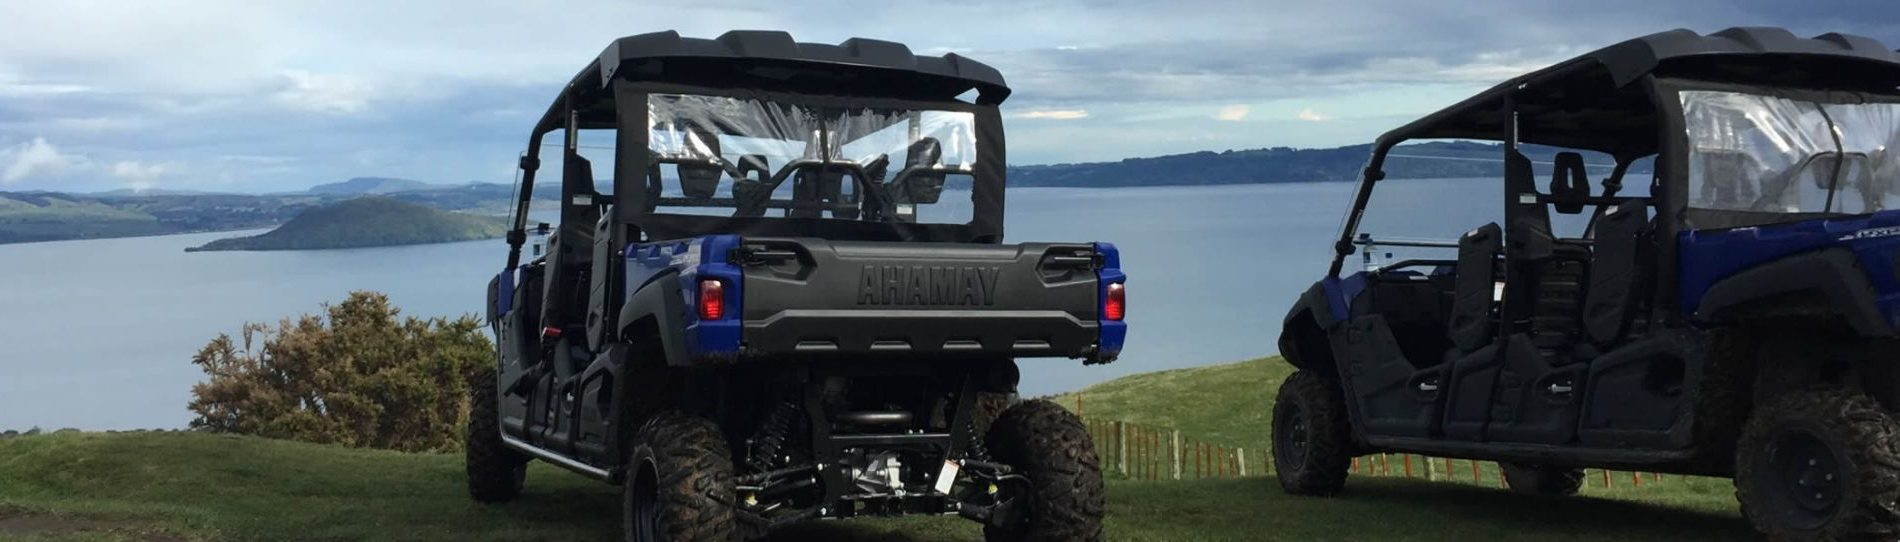 rotorua off road adventure nz